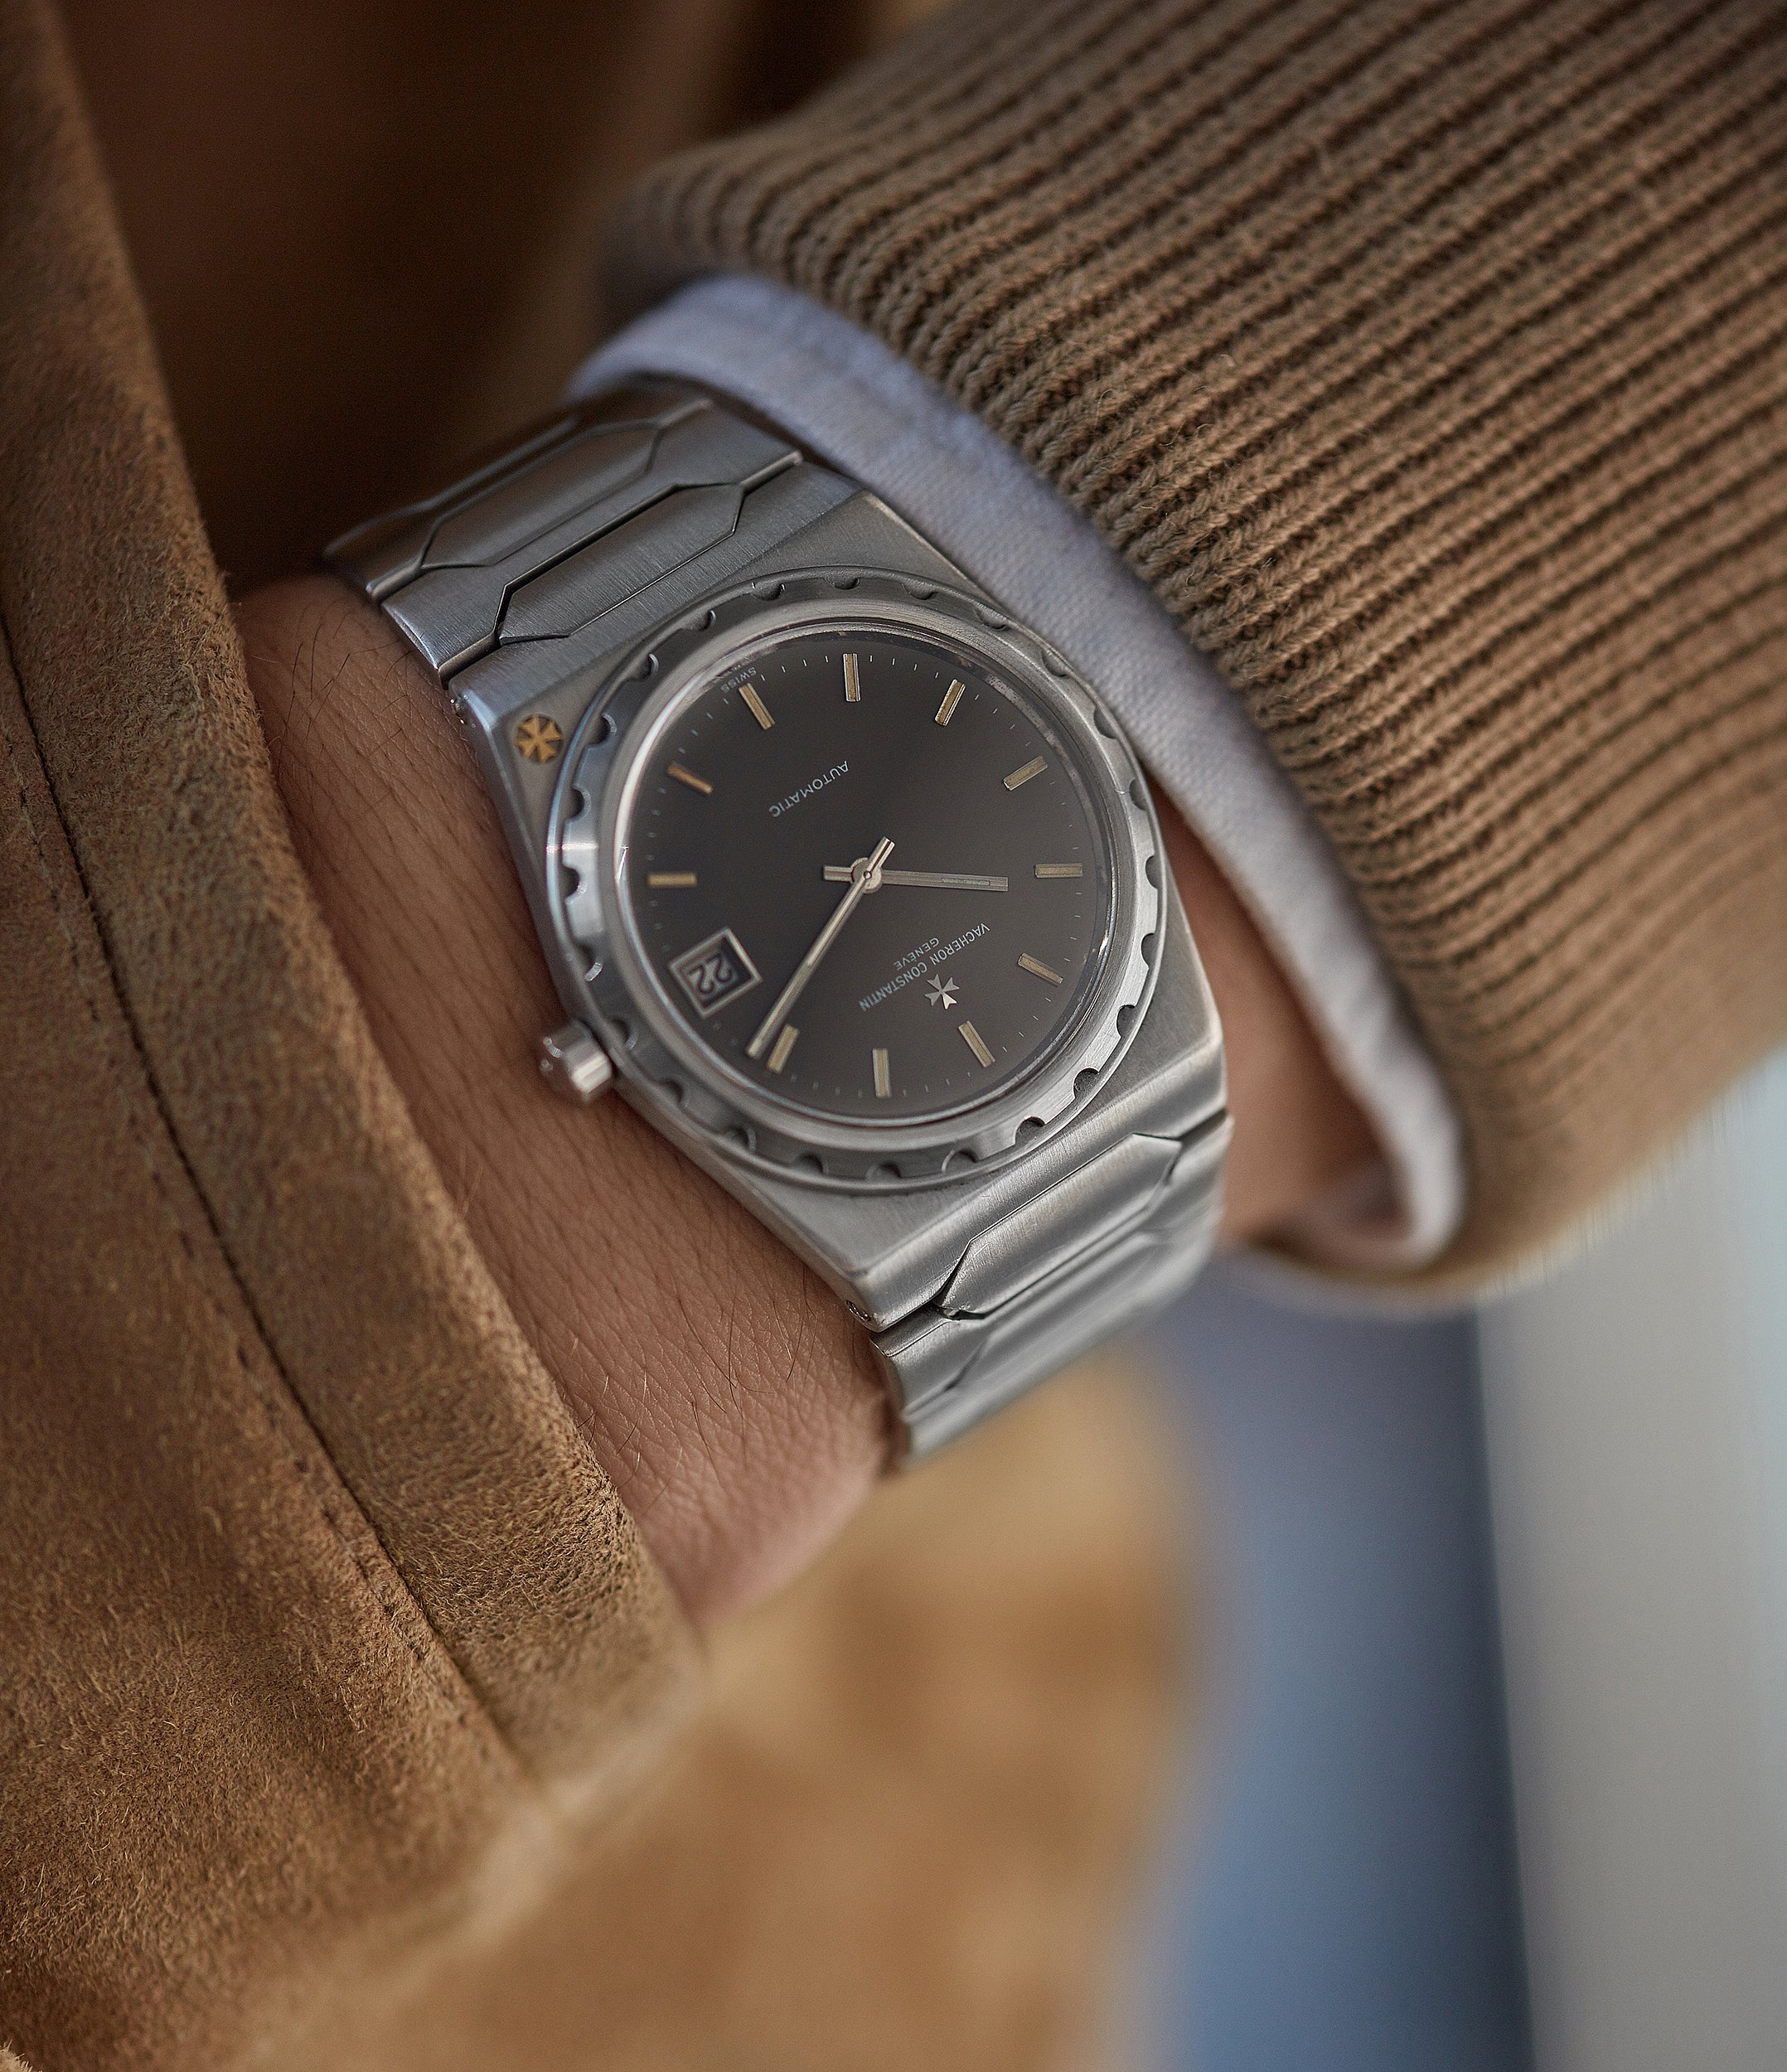 Vacheron Constantin 222 stainless steel with a black dial wrist shot for A Collected Man London